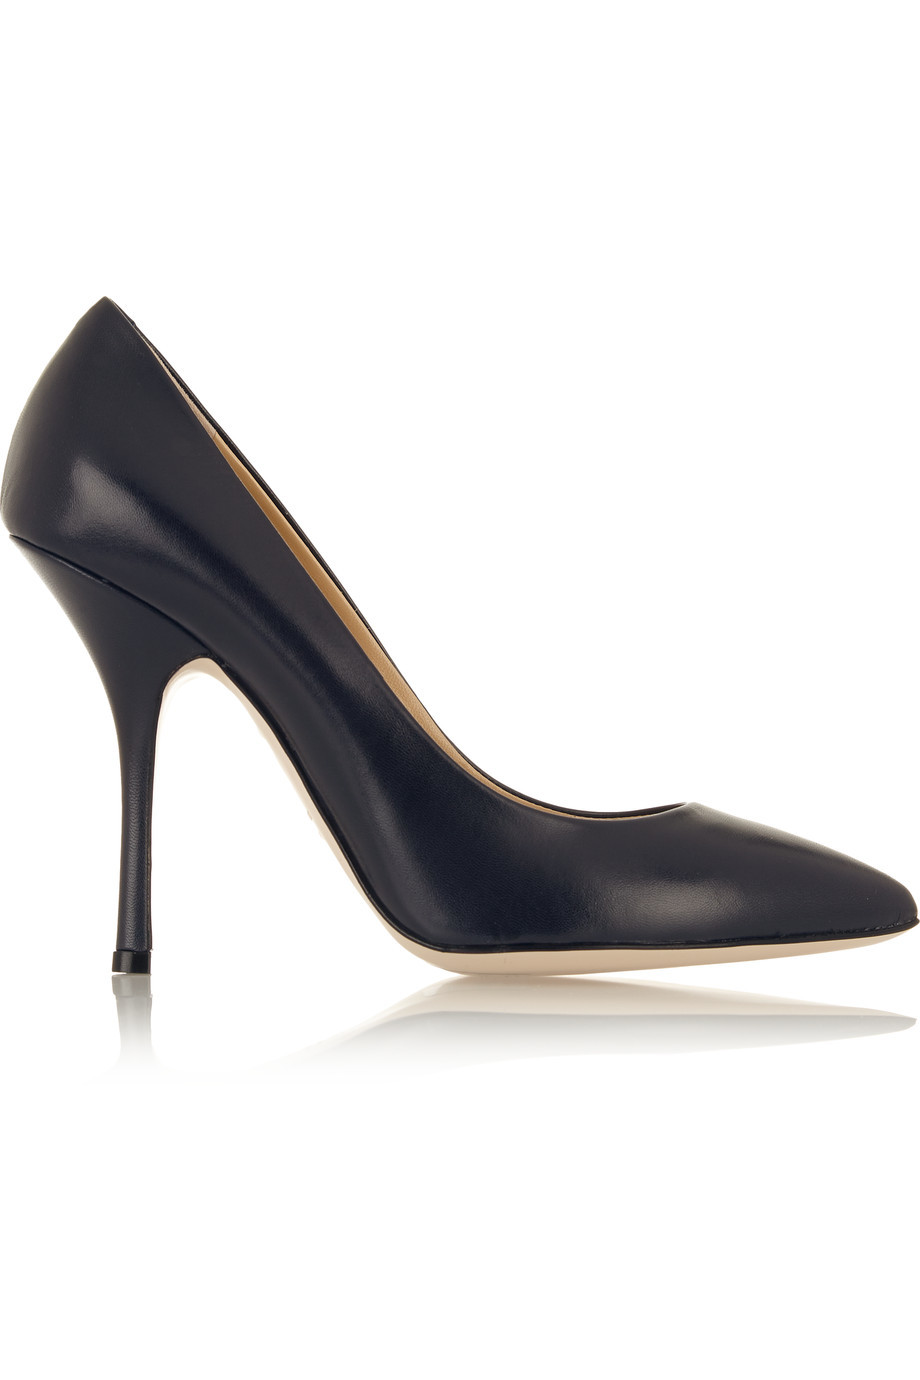 Leather Pumps Midnight Blue - predominant colour: black; occasions: evening, work, occasion; material: leather; heel: stiletto; toe: pointed toe; style: courts; finish: plain; pattern: plain; heel height: very high; season: s/s 2016; wardrobe: highlight